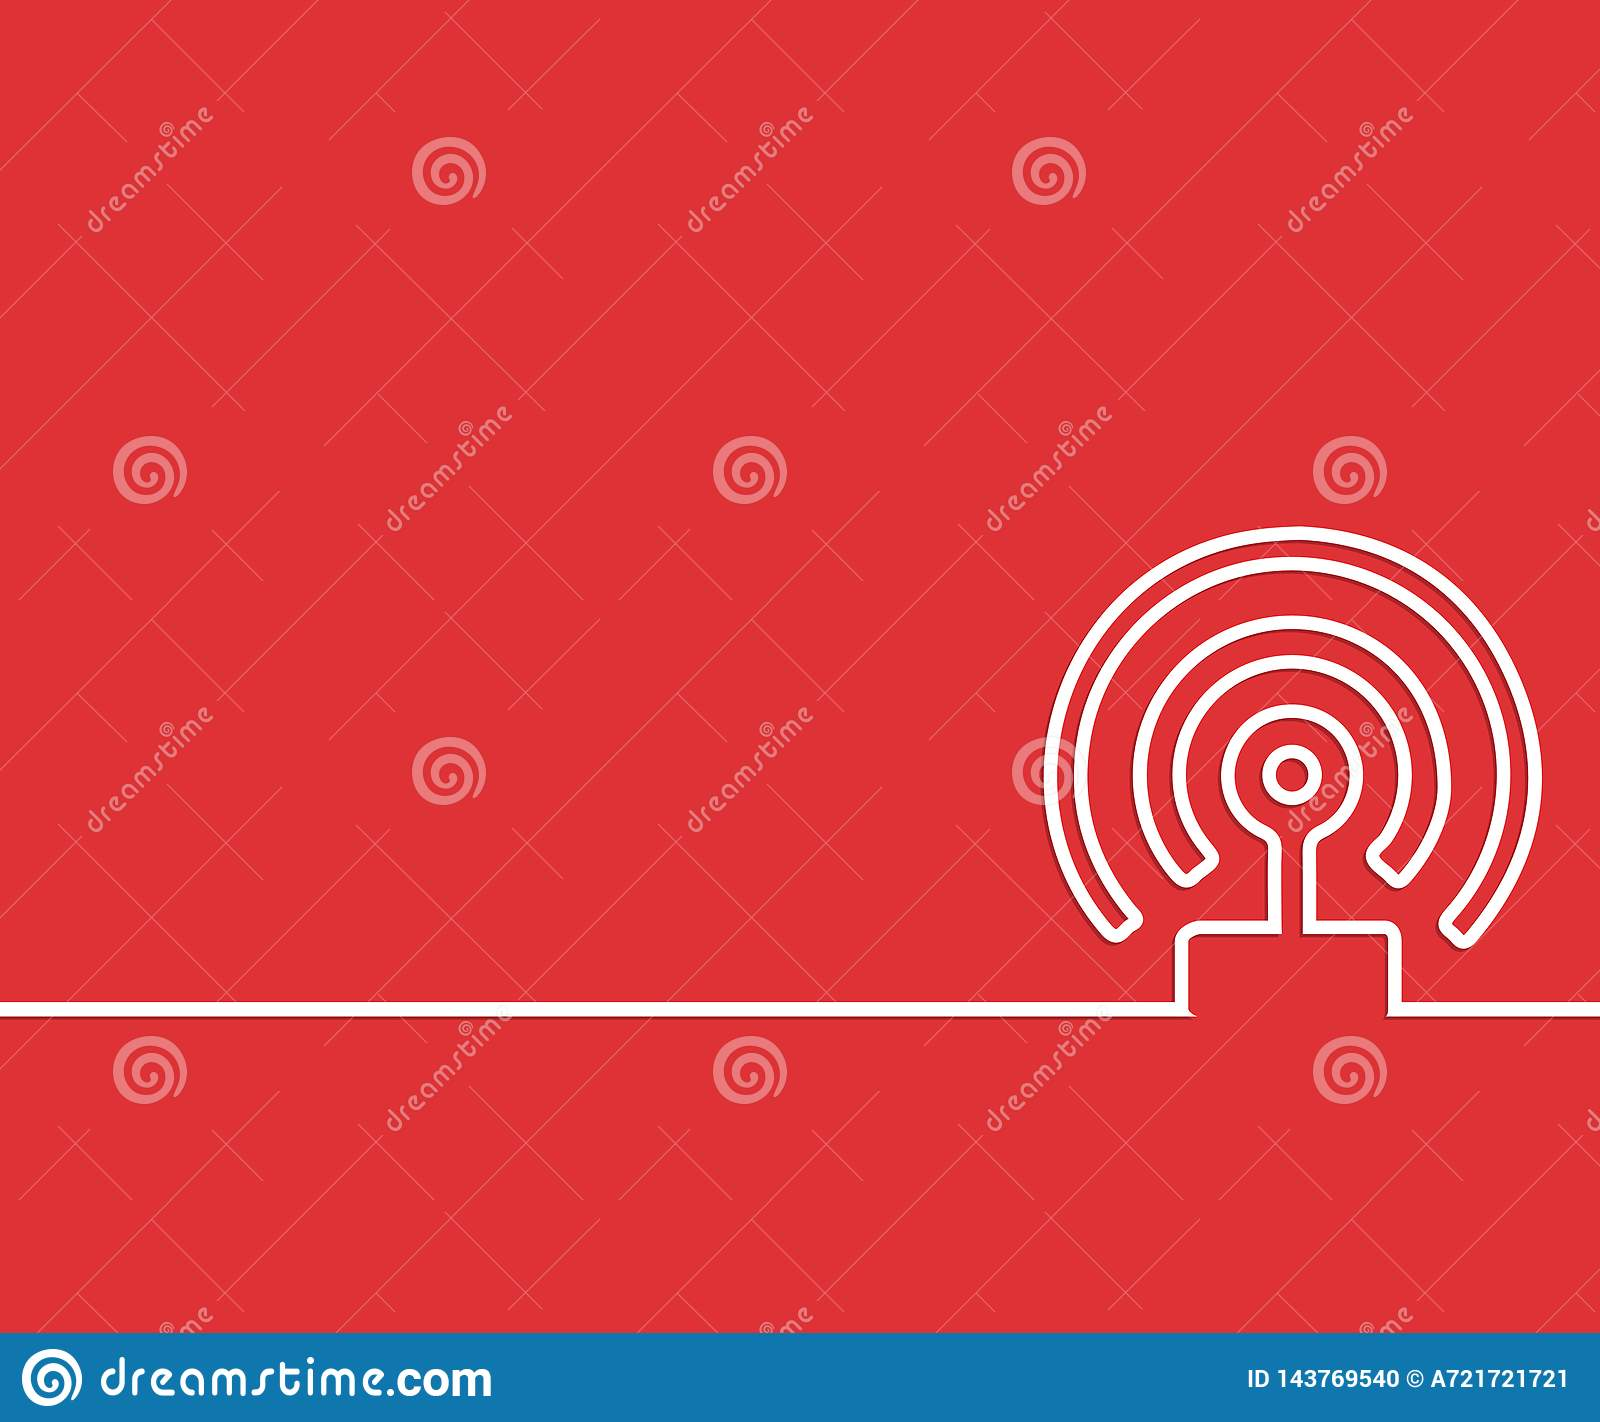 Abstract creative concept line draw background for web, mobile app, illustration template design, business infographic, page,